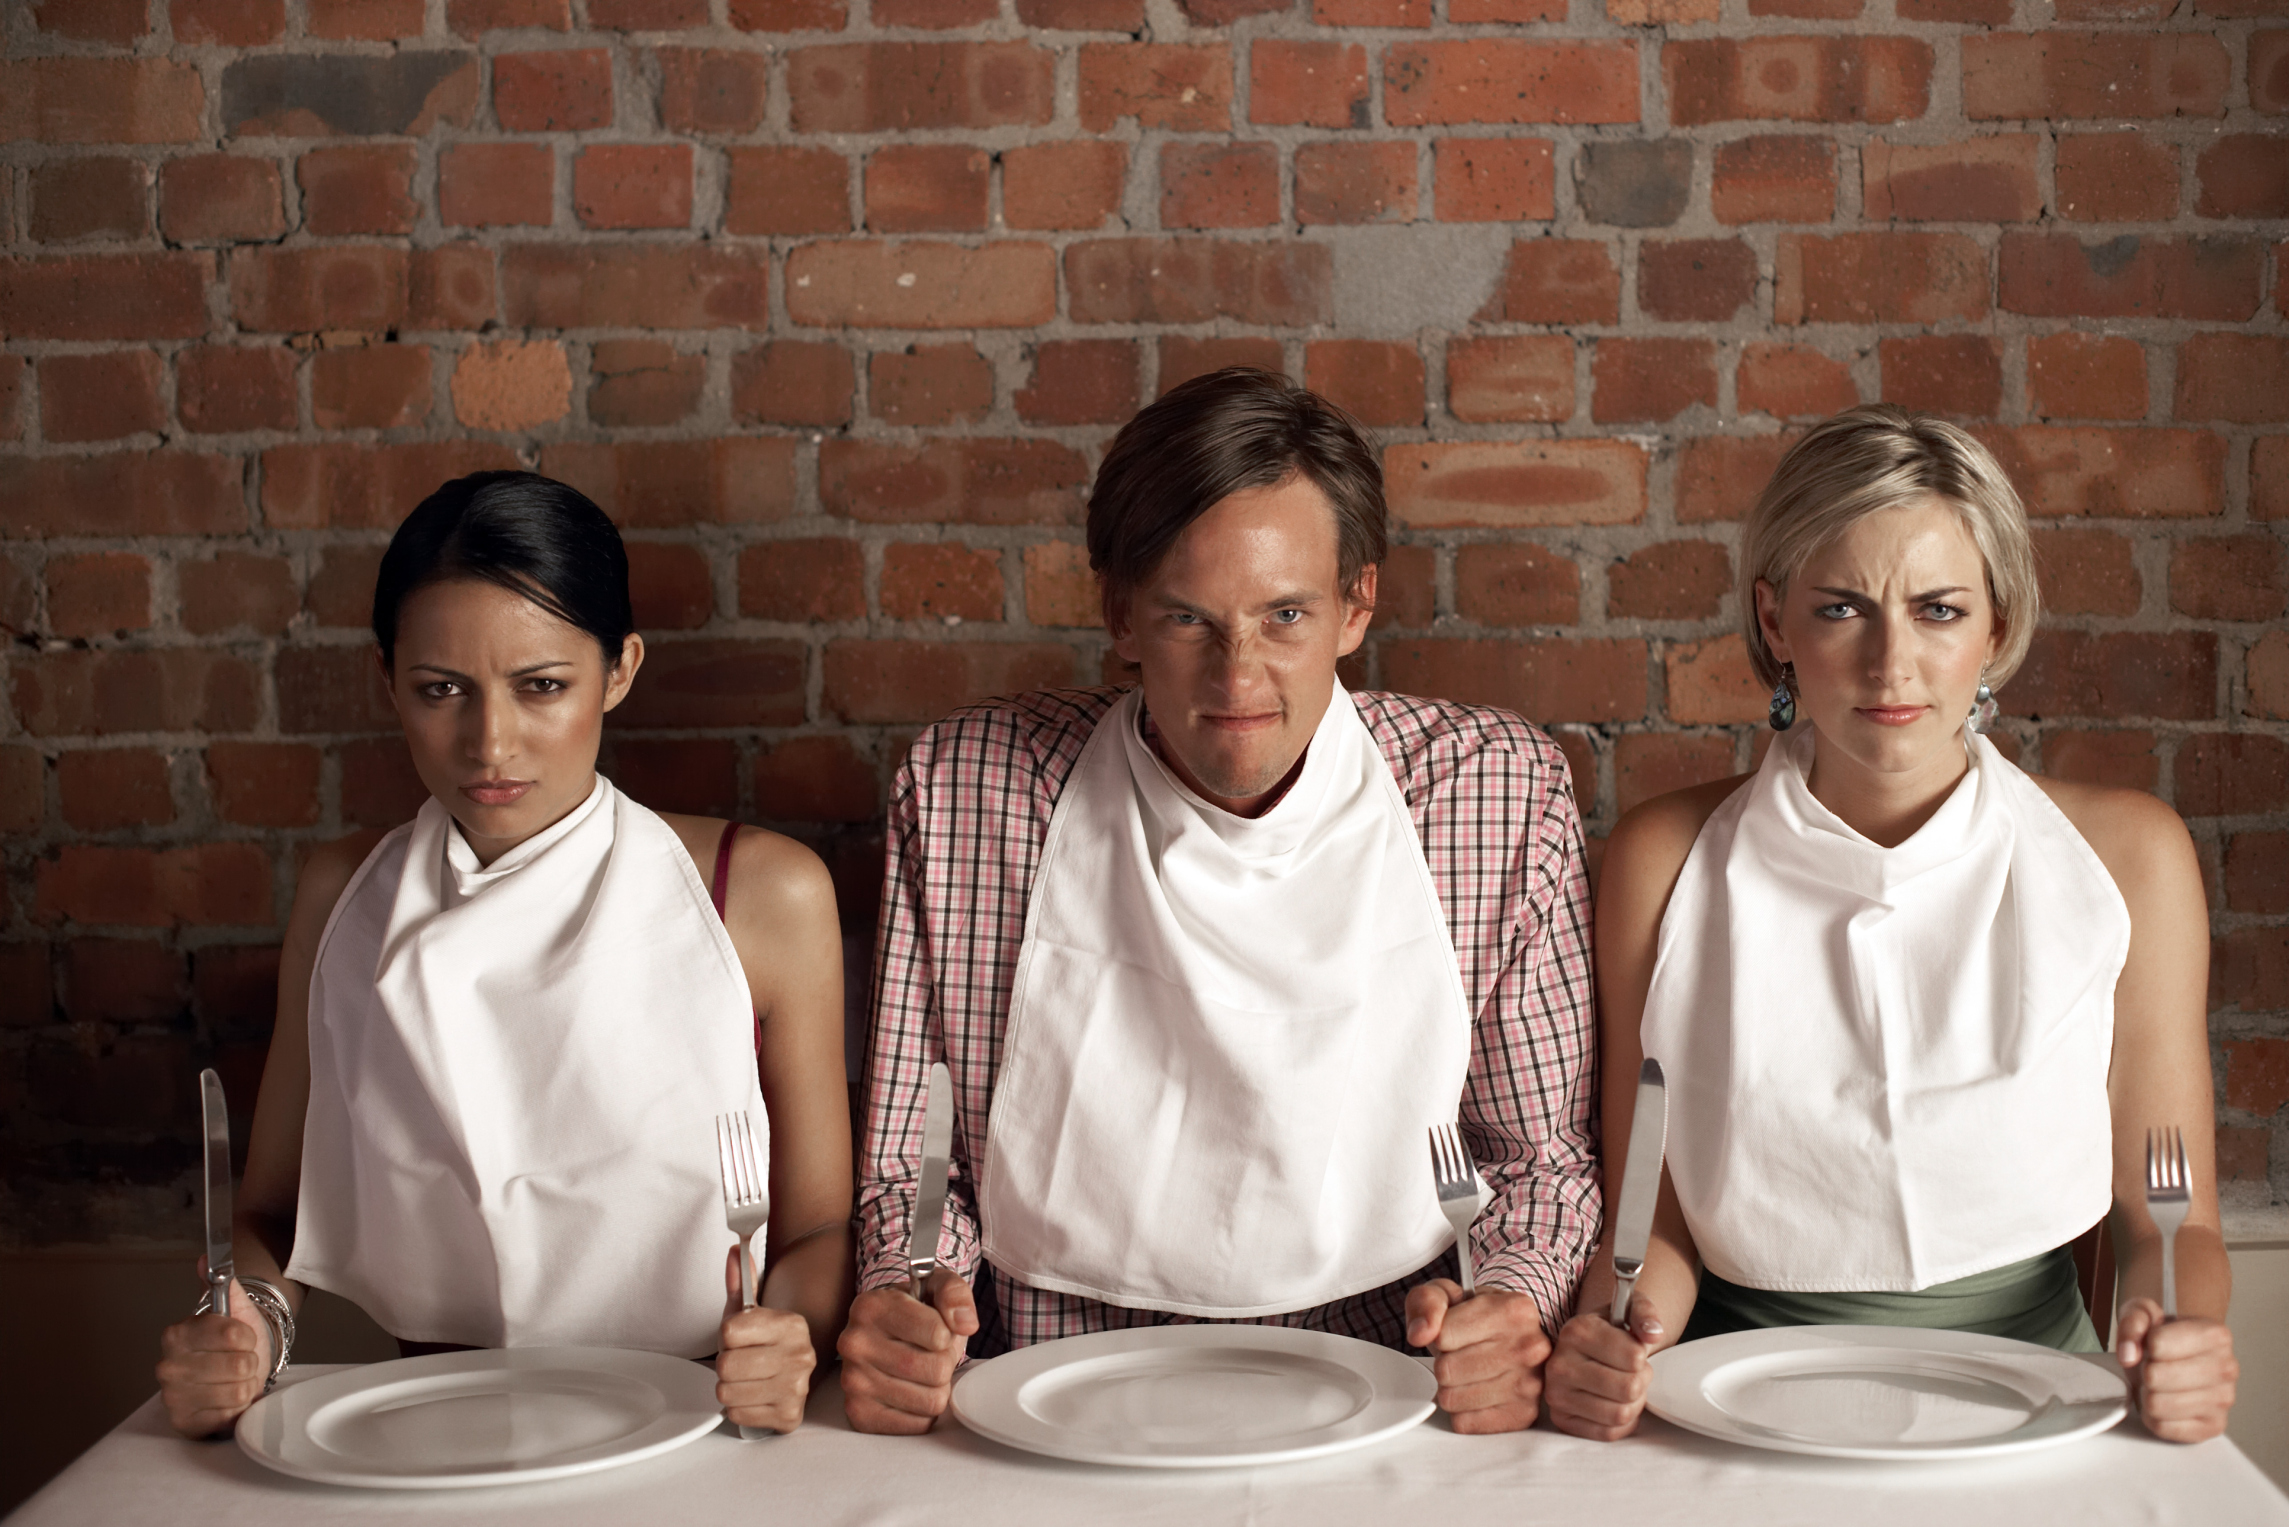 Three people wearing napkins around their necks